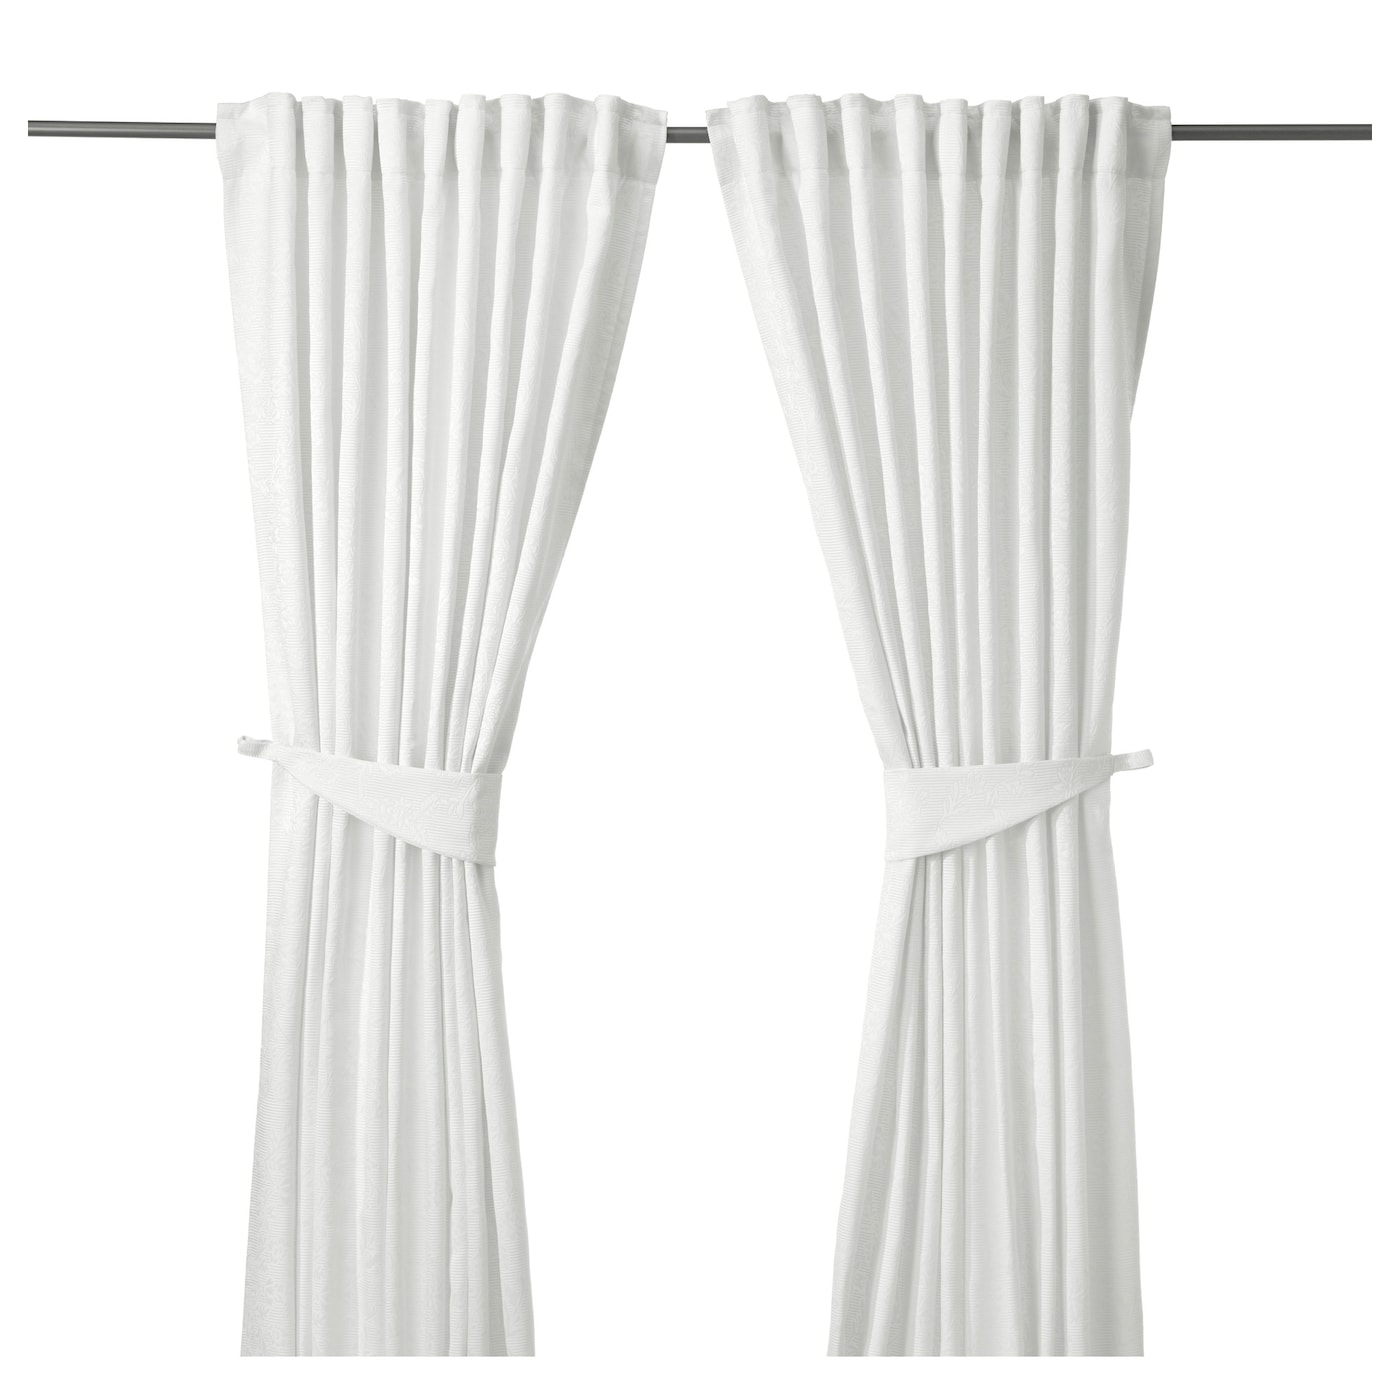 Blekviva curtains with tie backs 1 pair white 145x250 cm for White curtains ikea